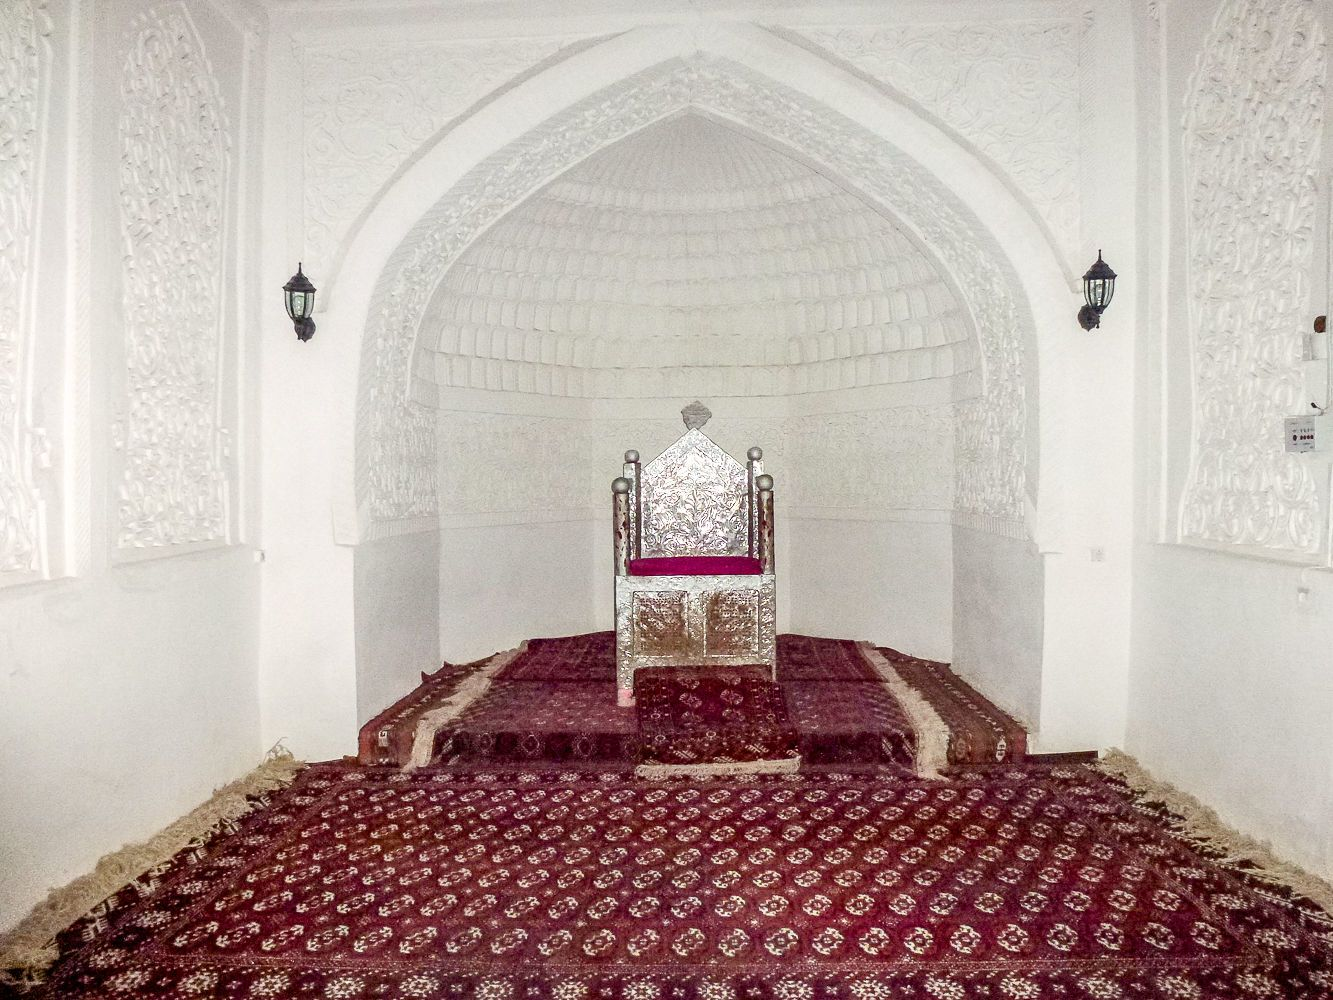 Throne of khan in Khiva made out of silver, Uzbekistan tour, Central Asia history